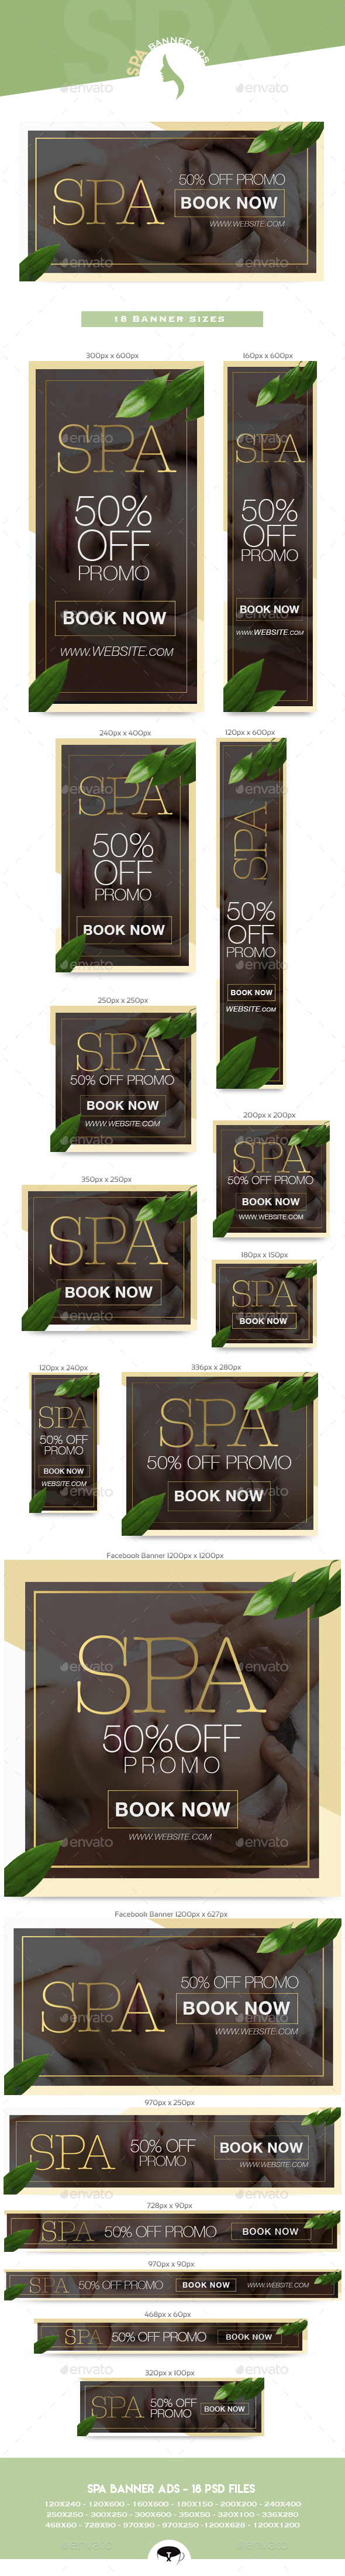 Spa Banner Ads - Banners & Ads Web Elements